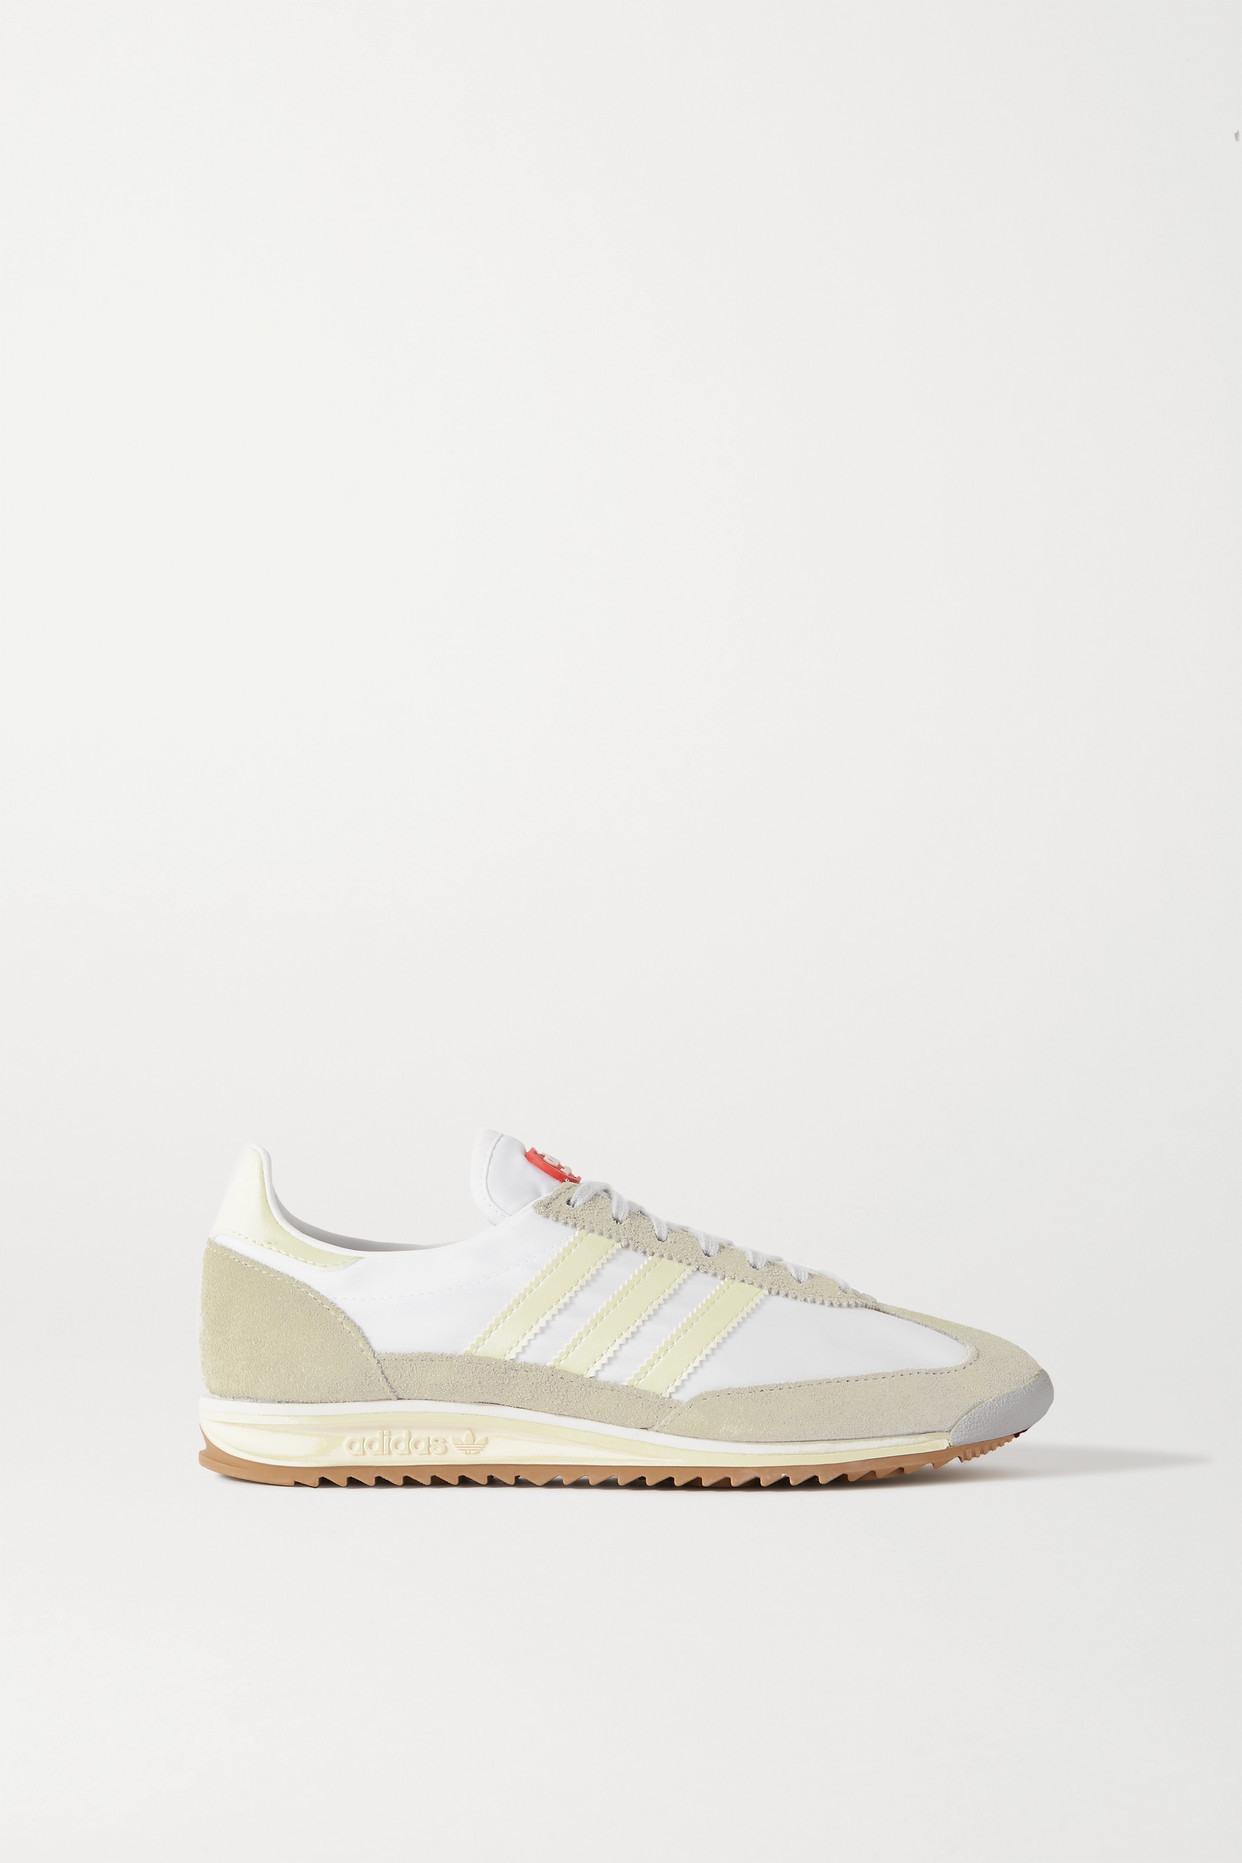 ADIDAS ORIGINALS - + Lotta Volkova Sl 72 Shell, Leather And Suede Sneakers - White - UK5